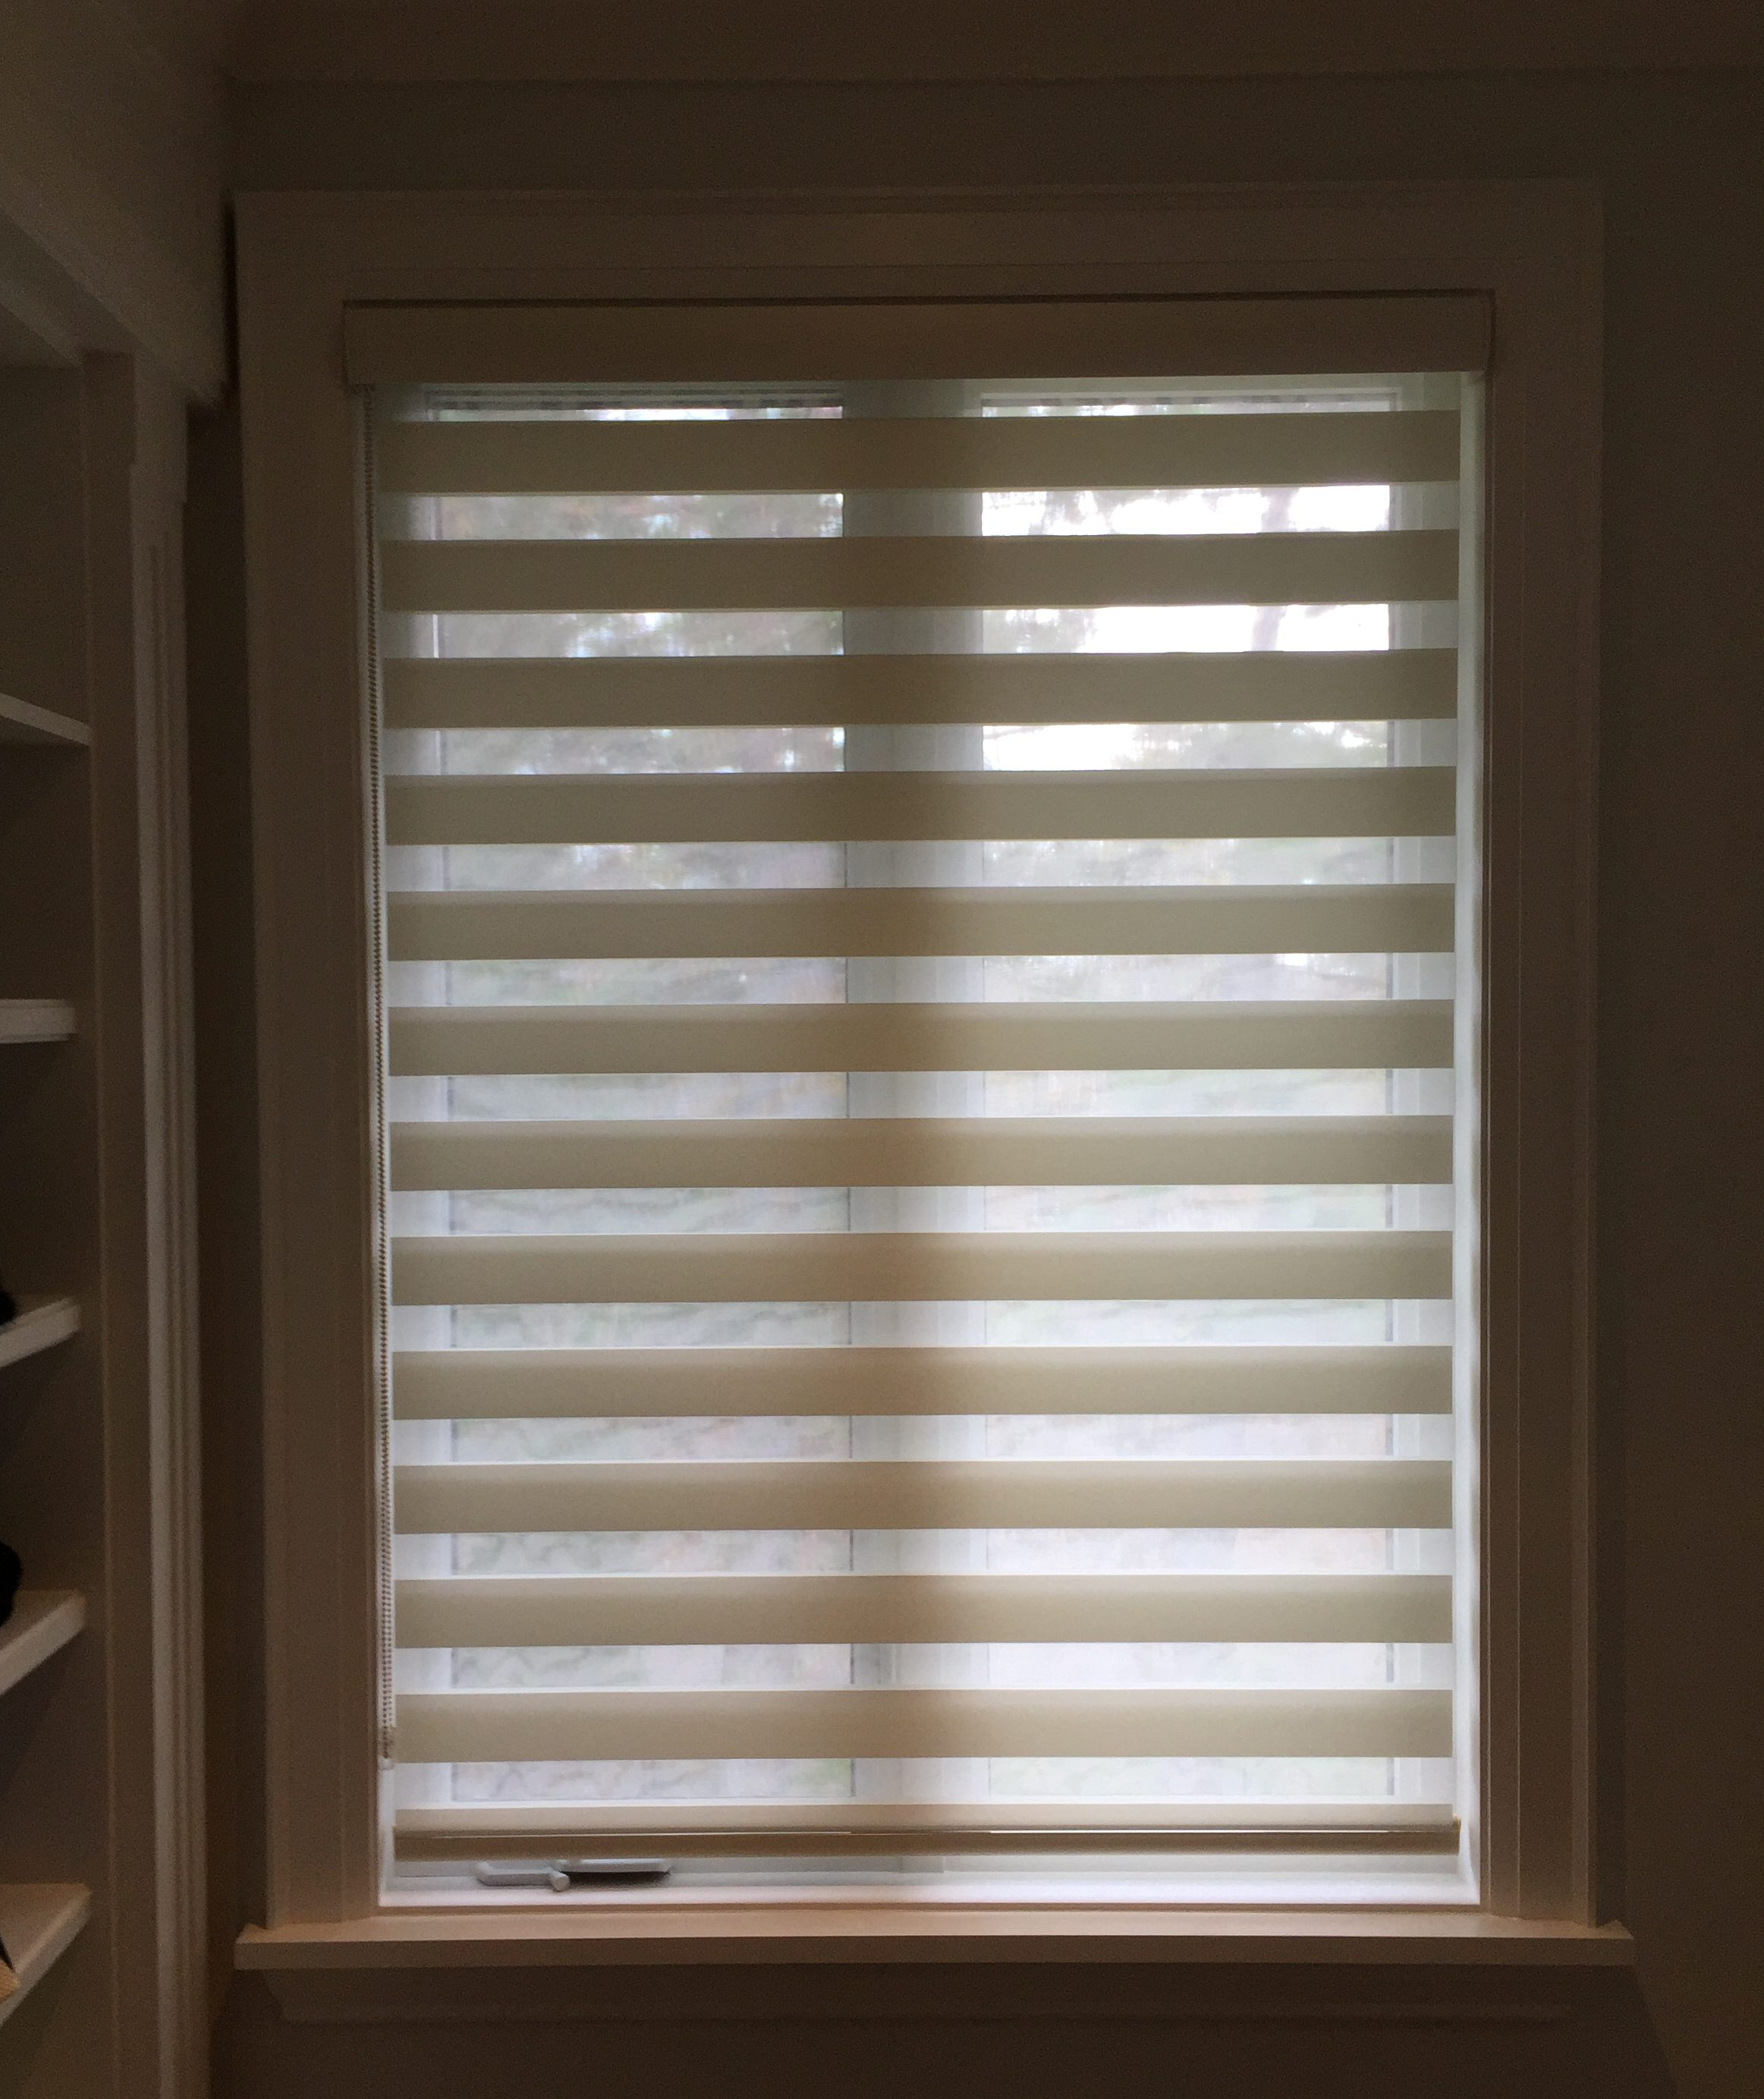 window blinds new gallery banded shadings open imager designer f shades phillips paint i